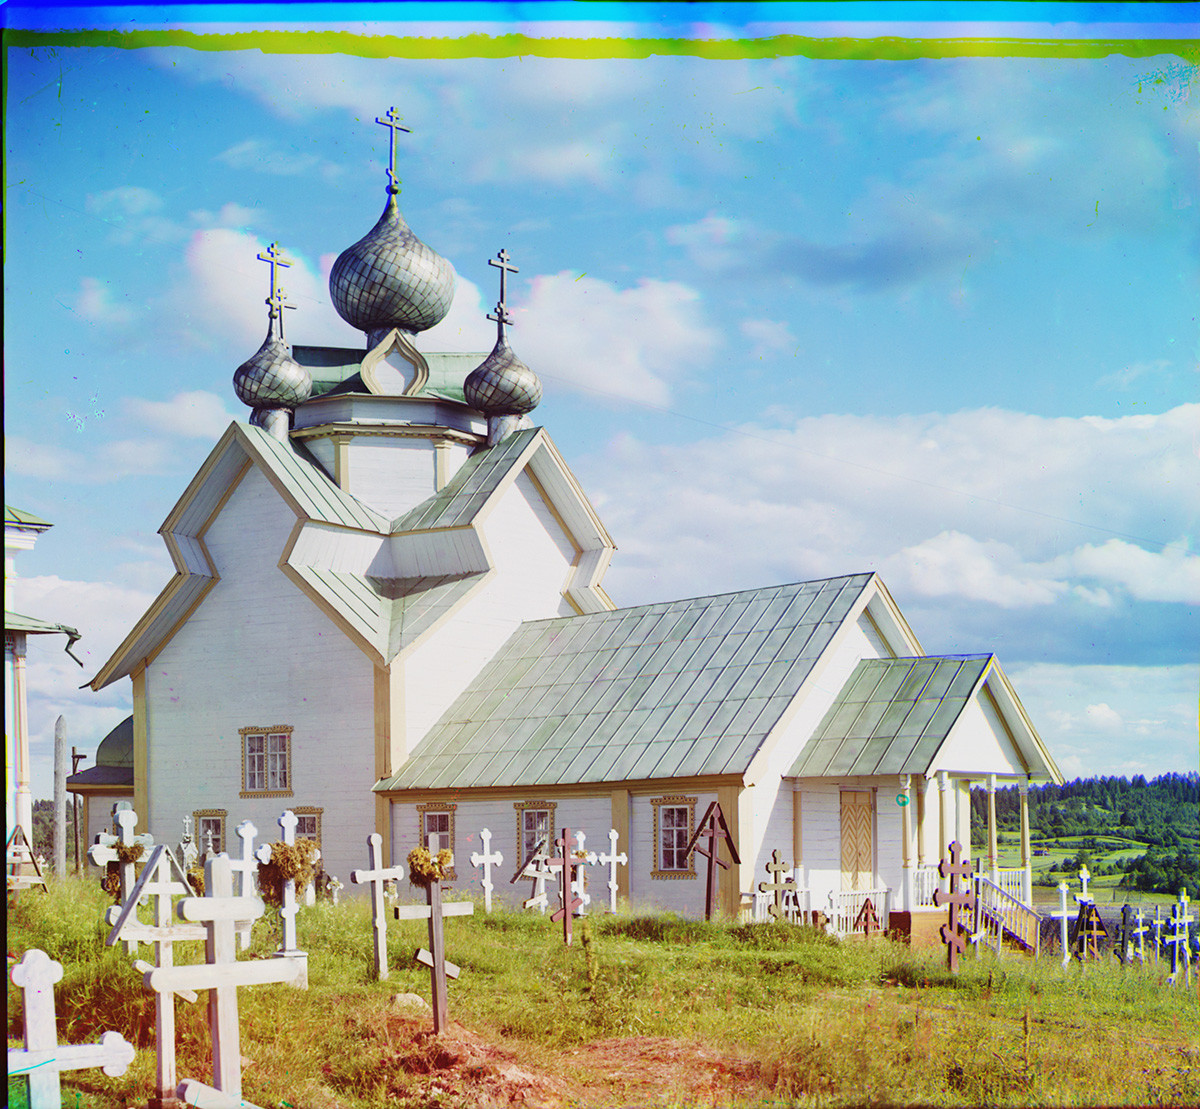 Devyatiny village. Church of the Dormition of the Virgin, northwest view. Destroyed by fire in 1984. Summer 1909